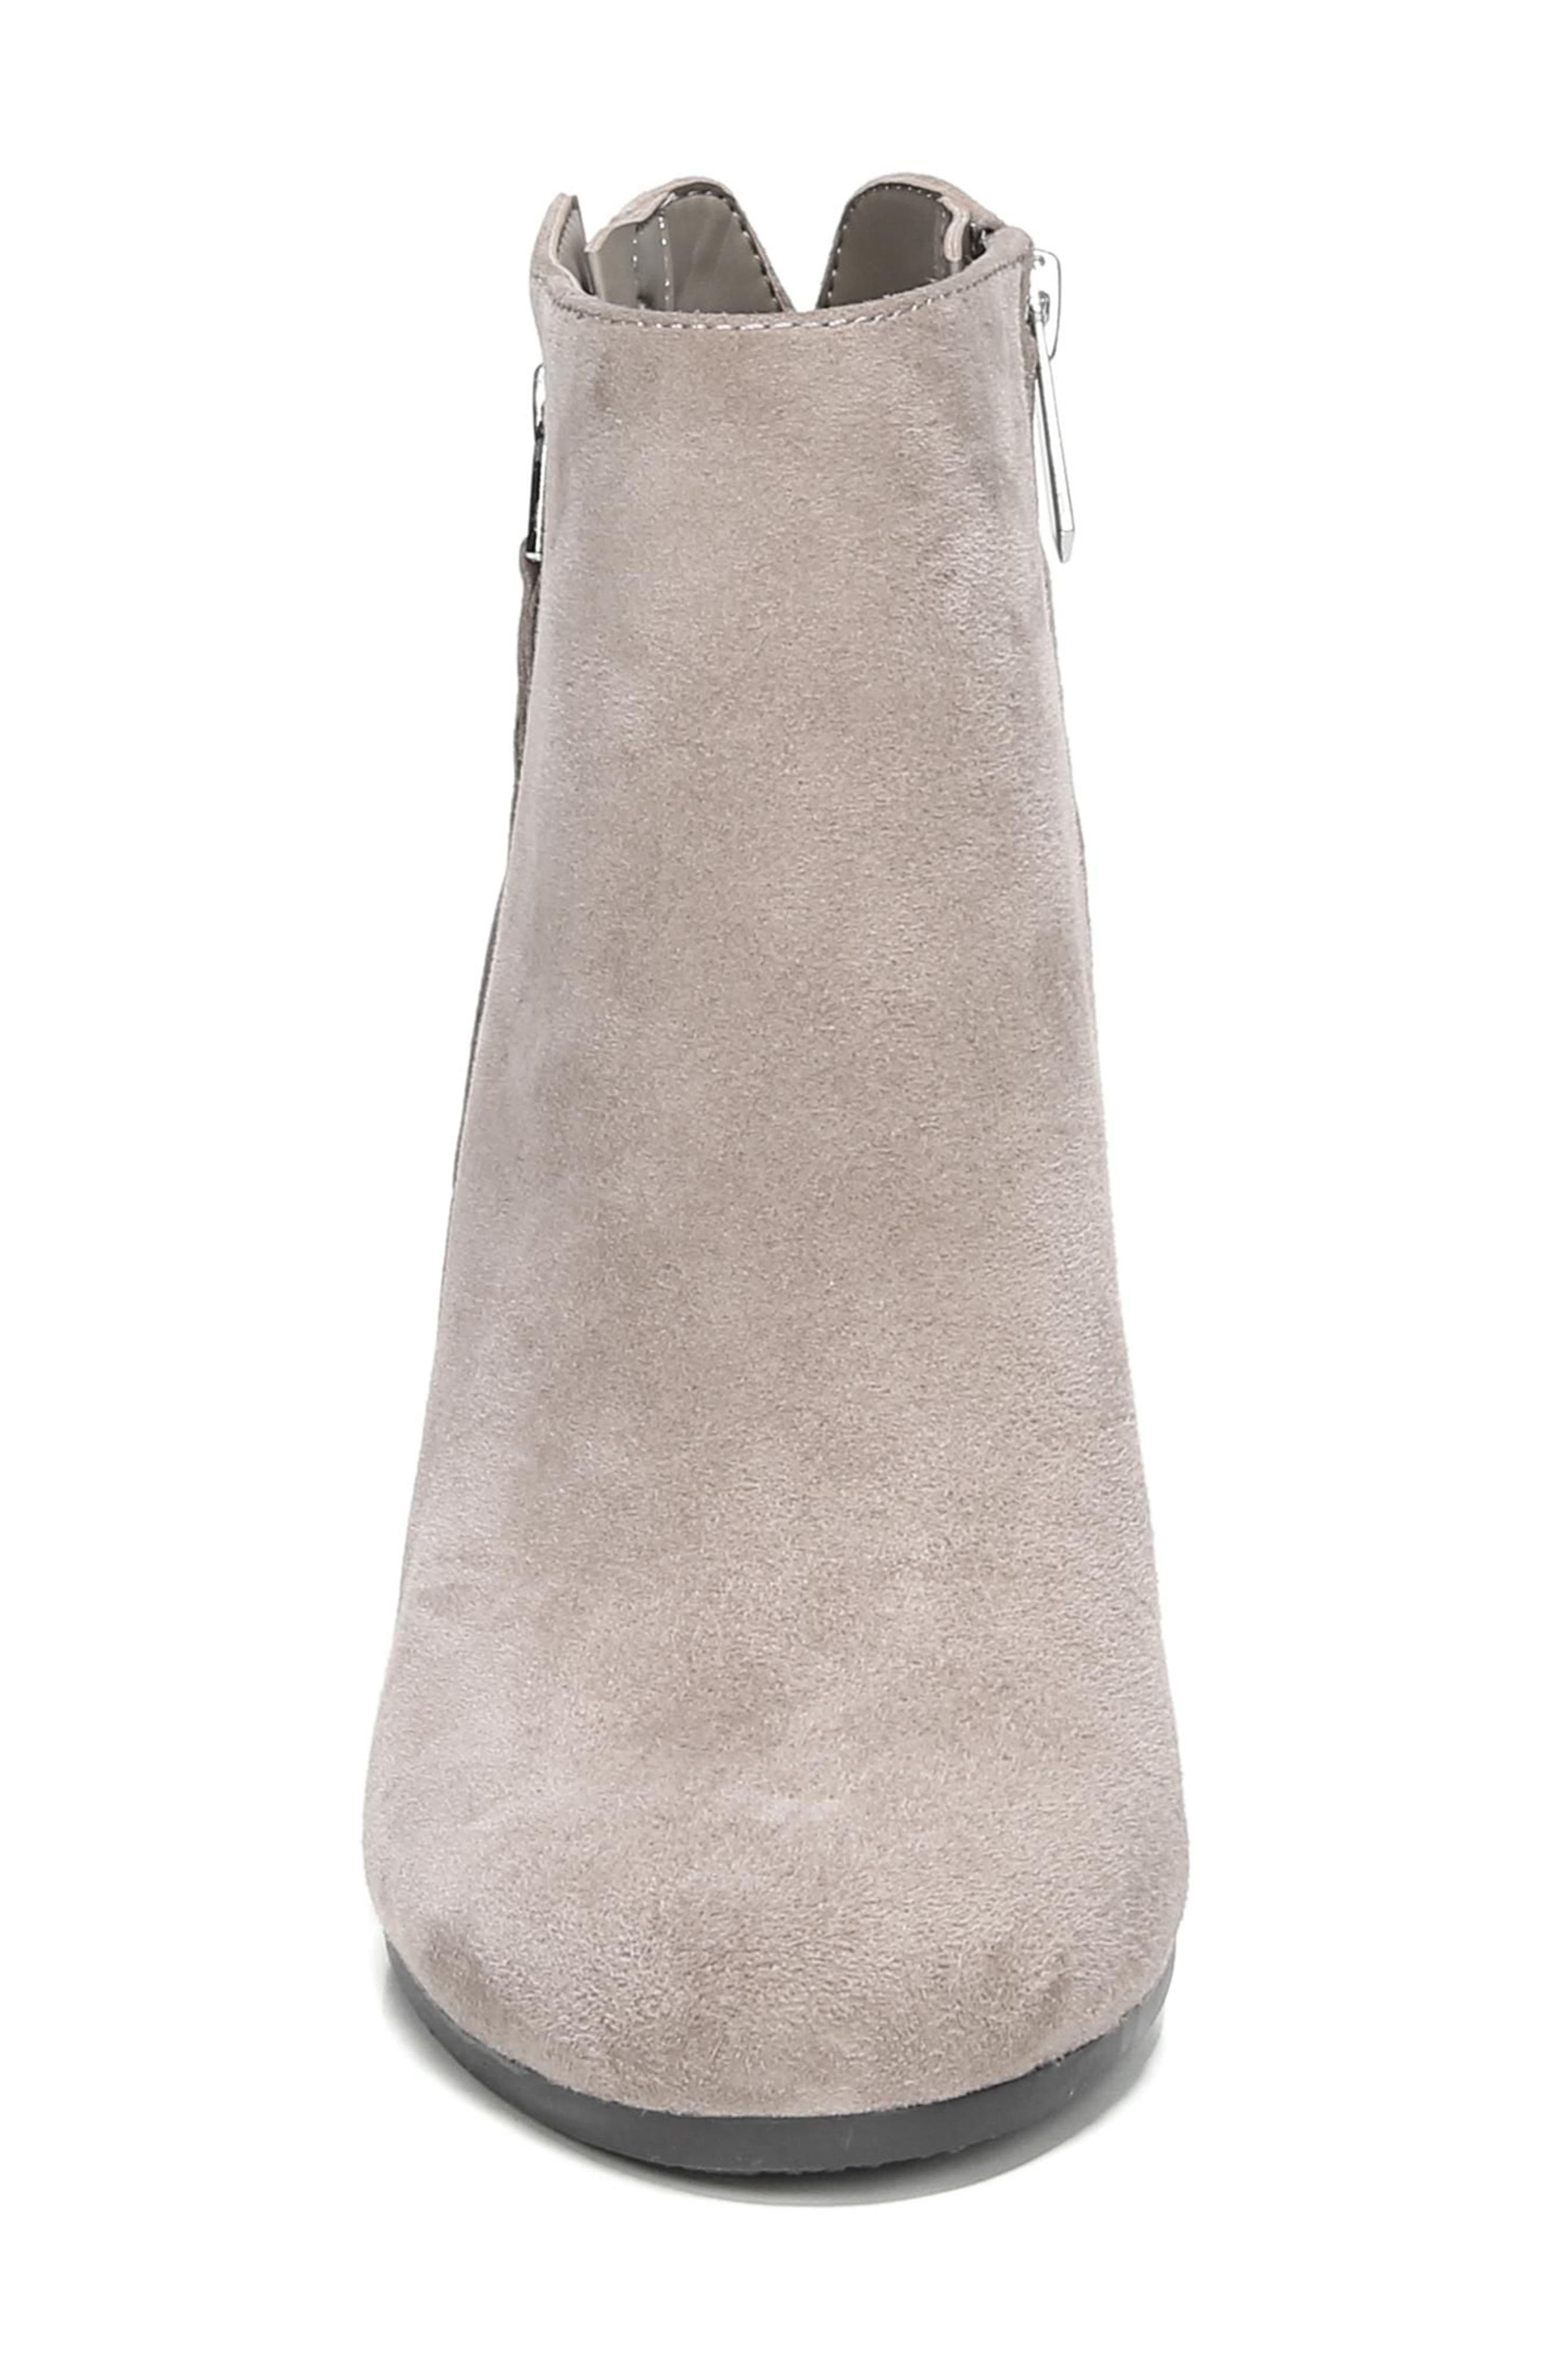 Sadee Angle Zip Bootie,                             Alternate thumbnail 4, color,                             NEW PUTTY SUEDE